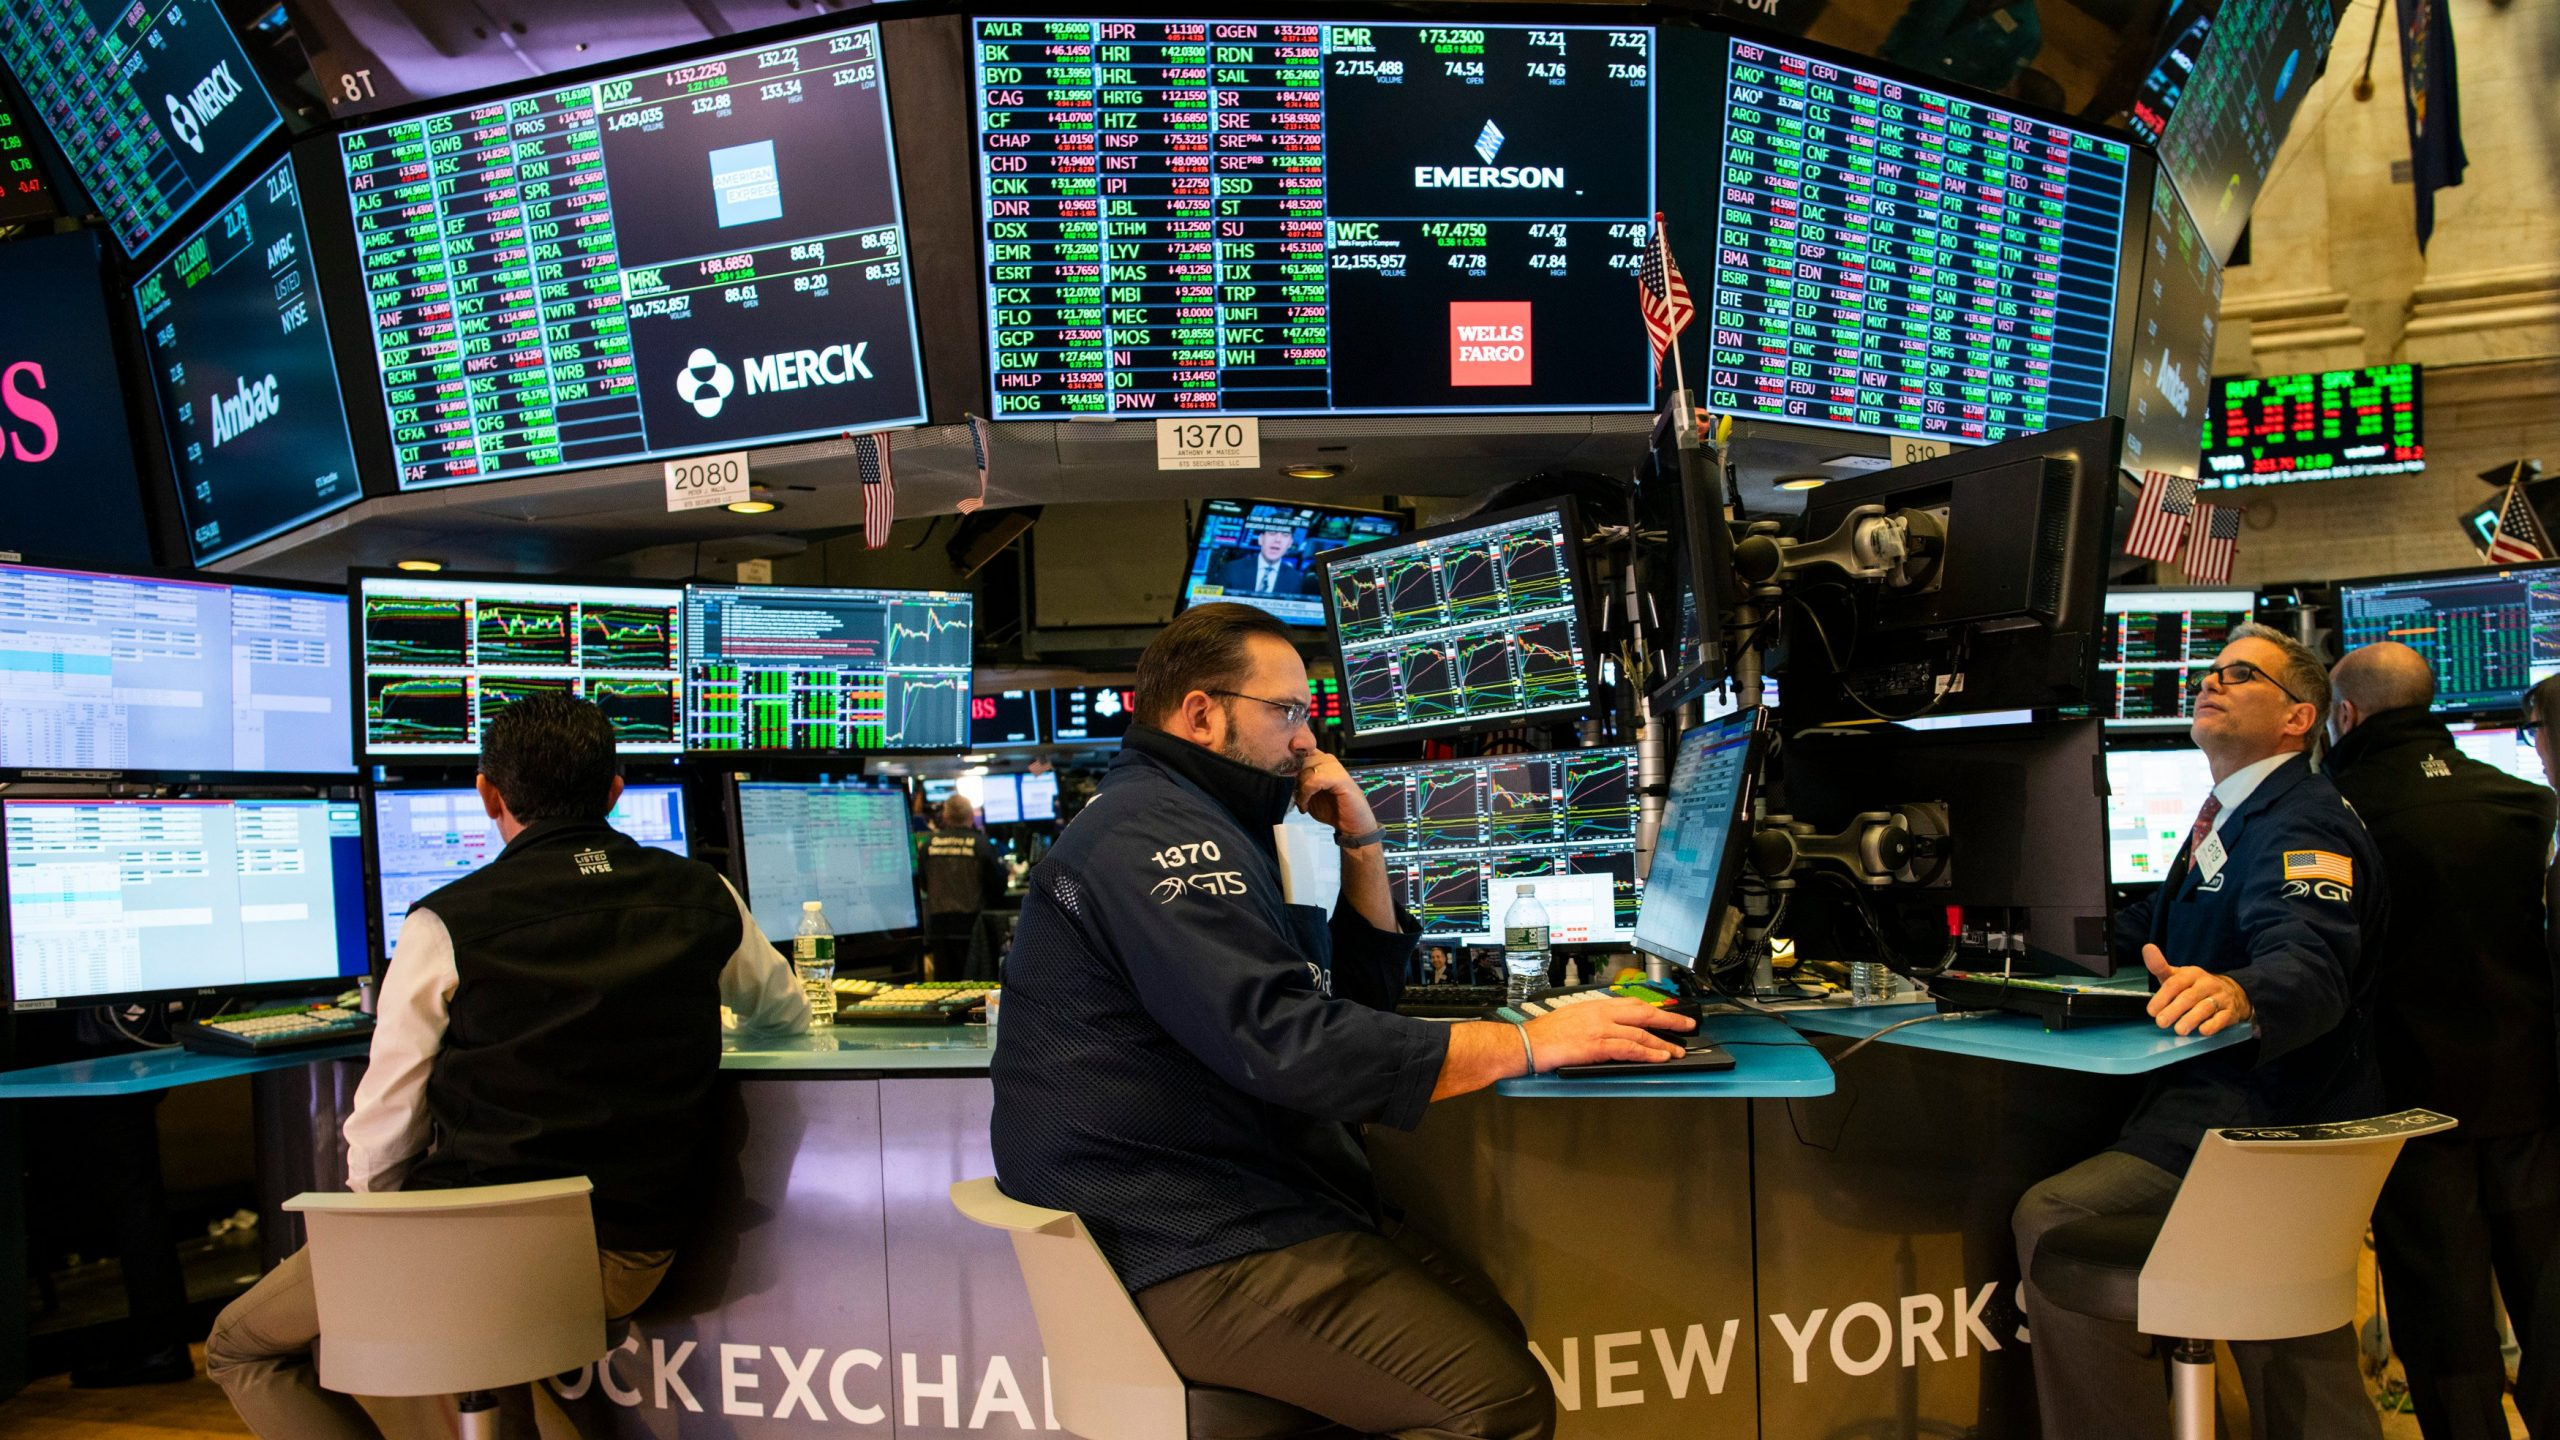 Traders work on the floor of the New York Stock Exchange (NYSE) on Feb. 4, 2020, in New York City. (Credit: Eduardo Munoz Alvarez/Getty Images)